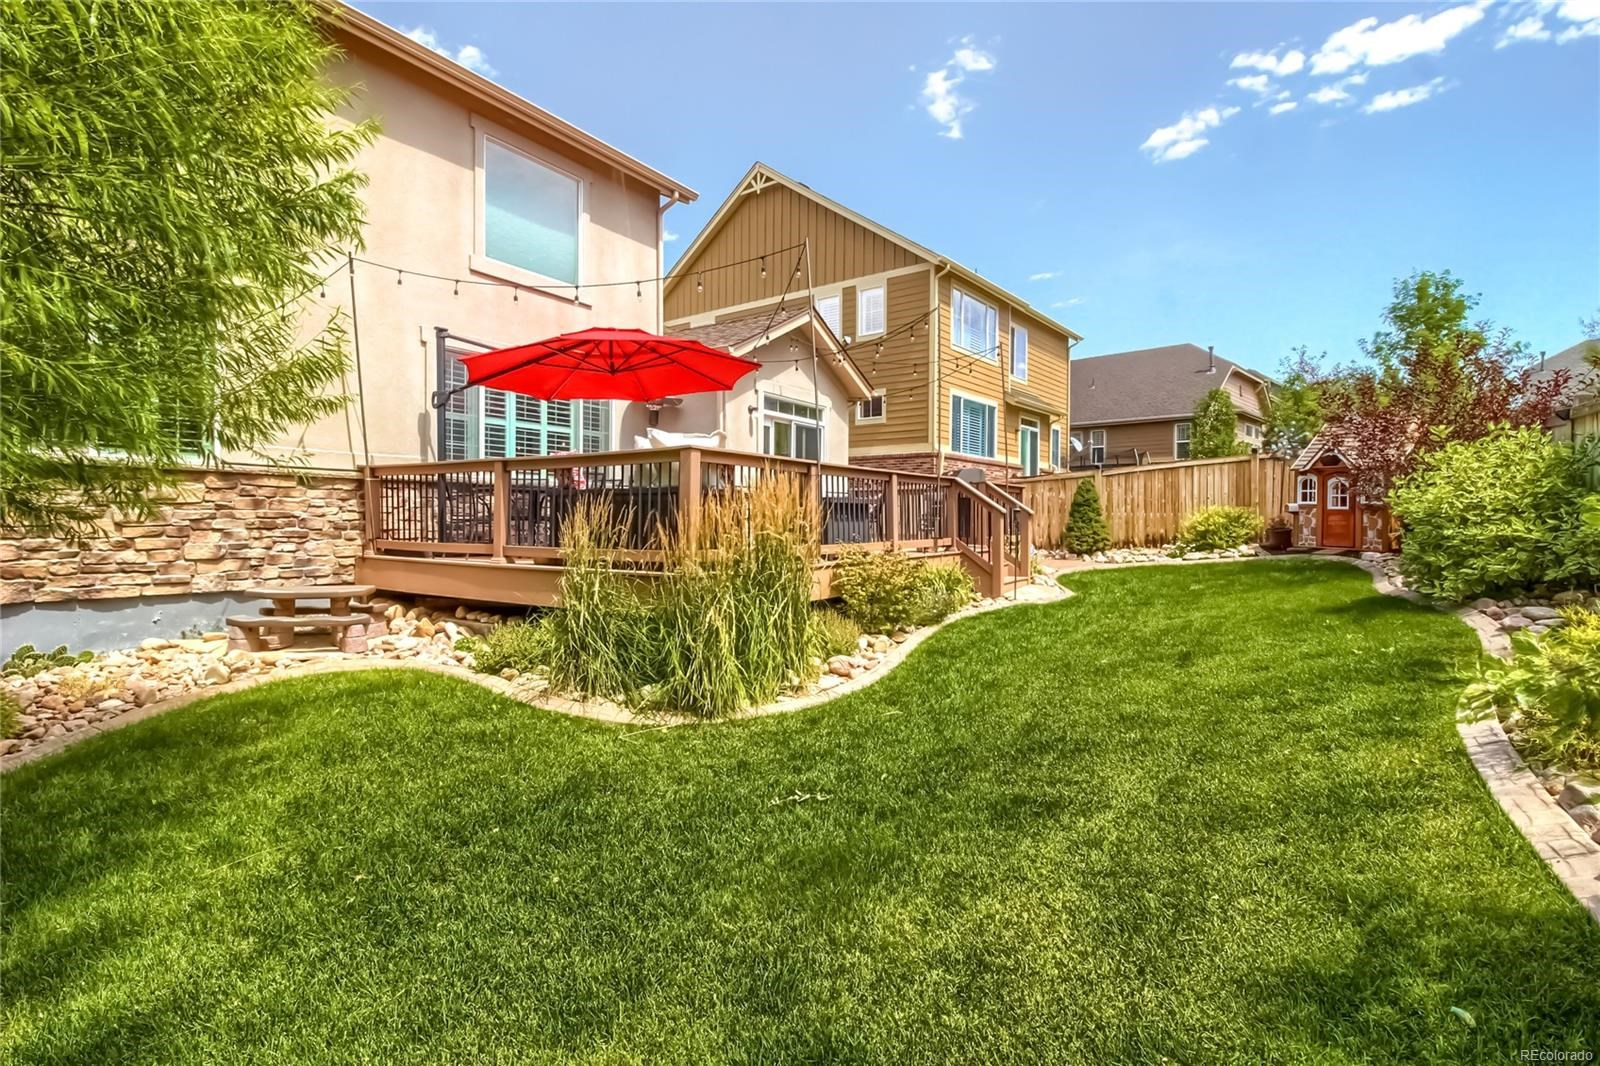 MLS# 5223399 - 38 - 23762 E Garden Drive, Aurora, CO 80016